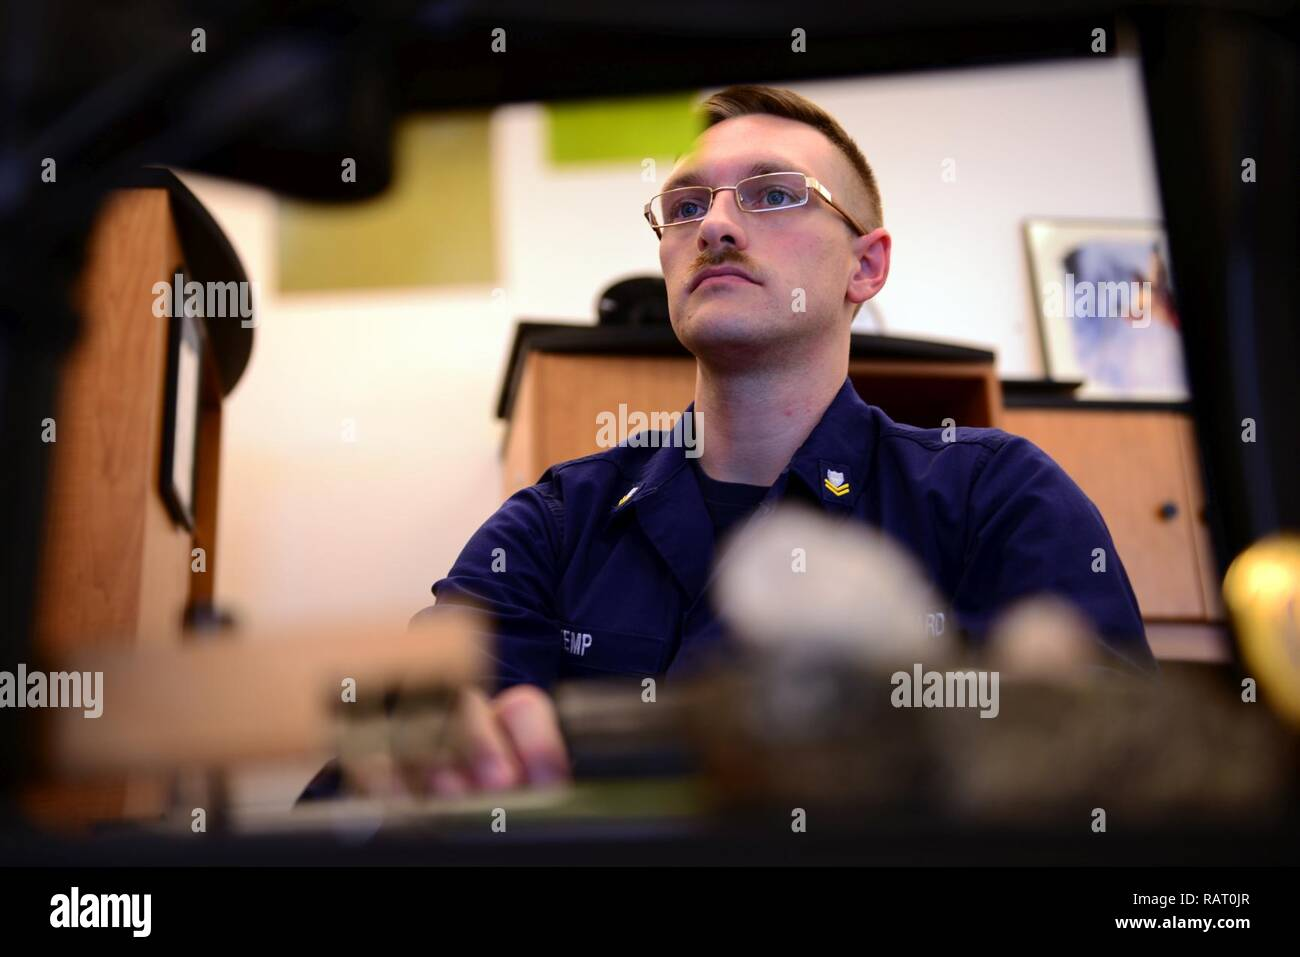 Coast Guard Petty Officer 2nd Class Michael Cody Kemp, a storekeeper stationed with the 13th District, works at his computer, Feb. 16, 2017. At work, Kemp processes procurement requests, removes and records property, reconciles accounts and acts as a liaison with Coast Guard Base Seattle personnel for any of their financial needs. U.S. Coast Guard - Stock Image